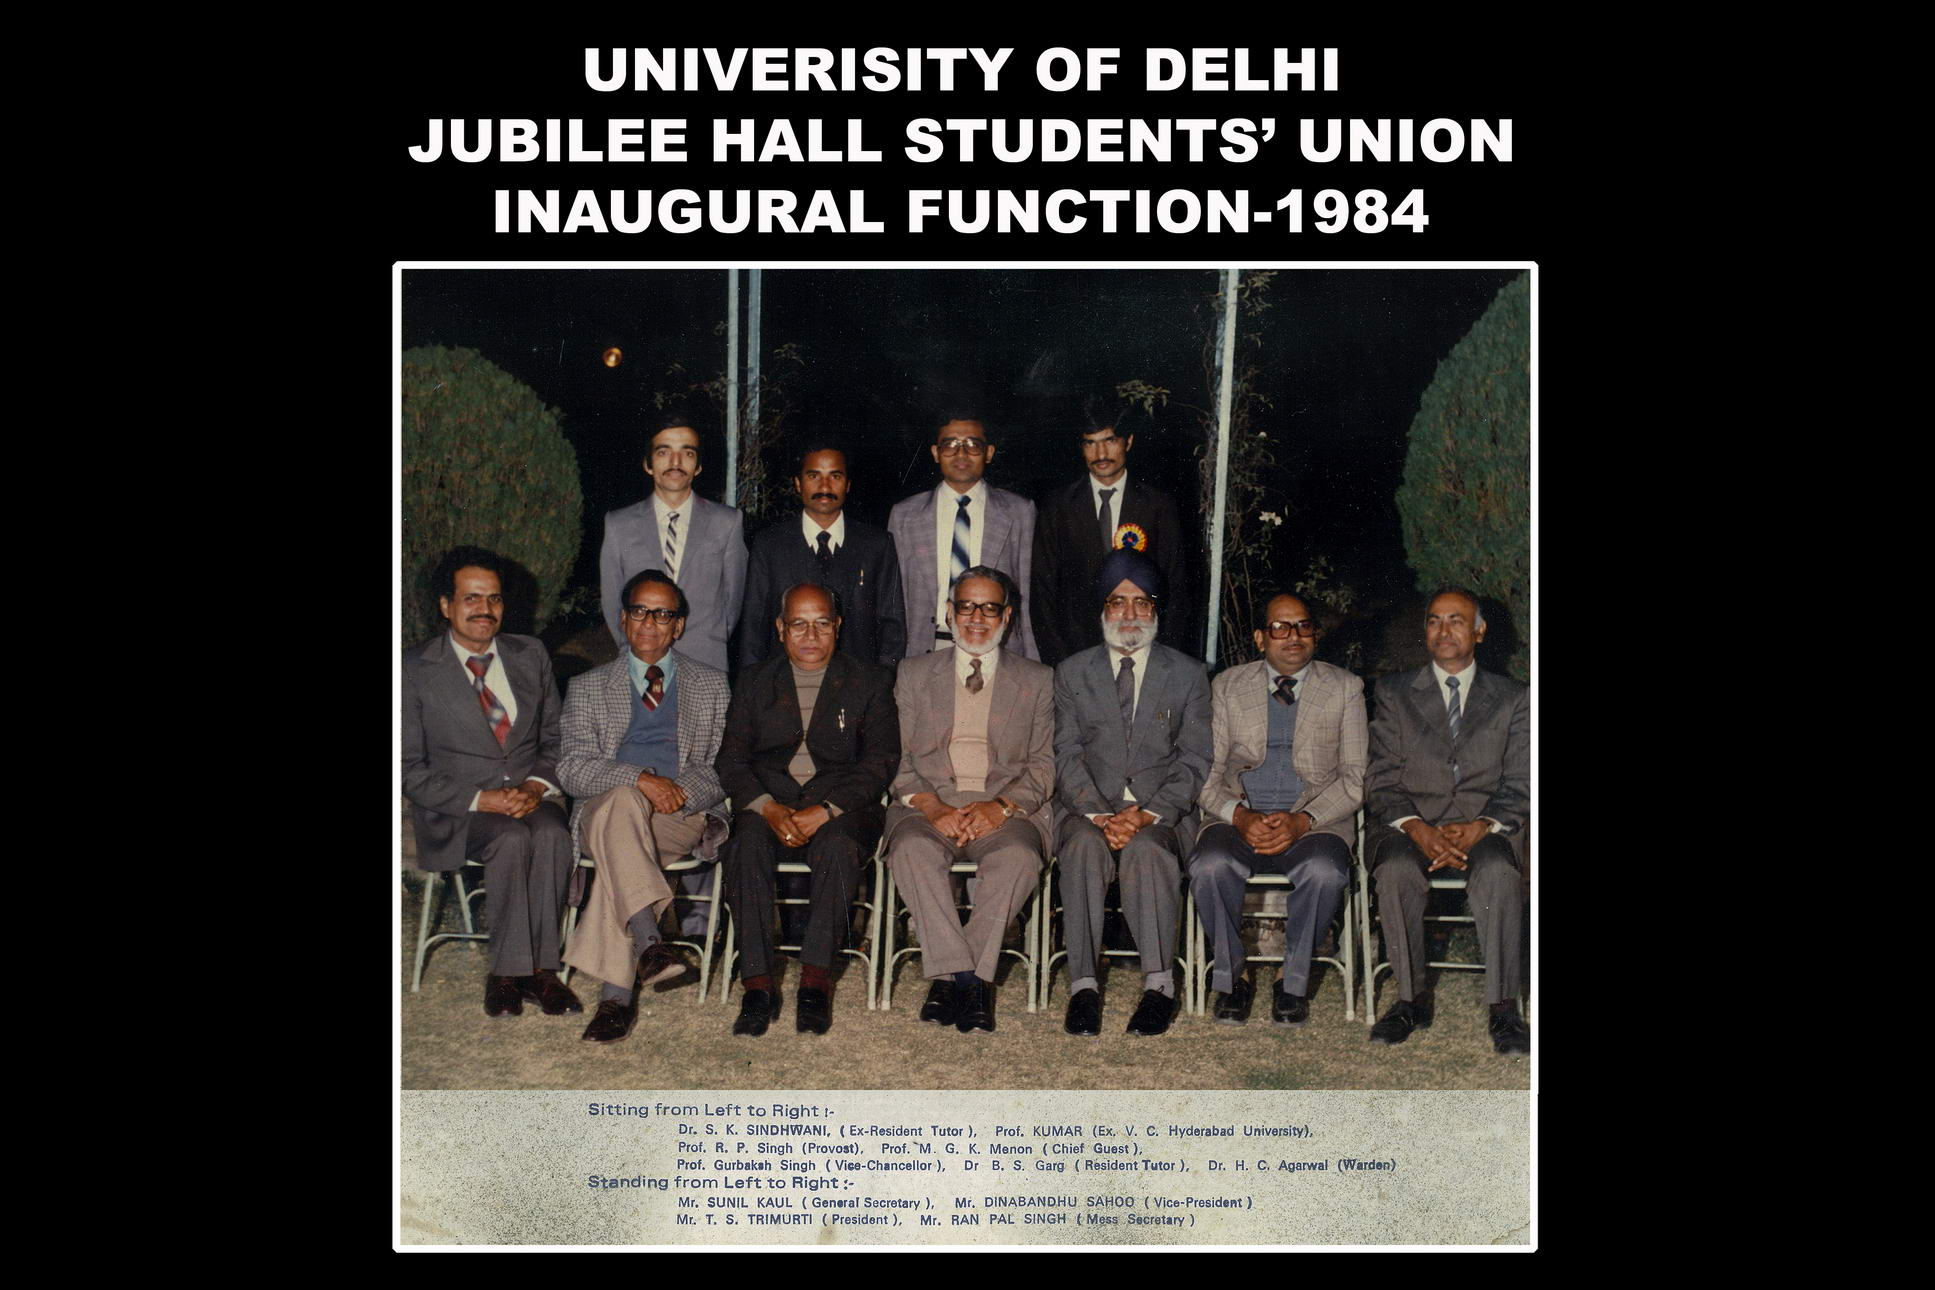 images/gallery/museum//1984 Student Union_resize.jpg